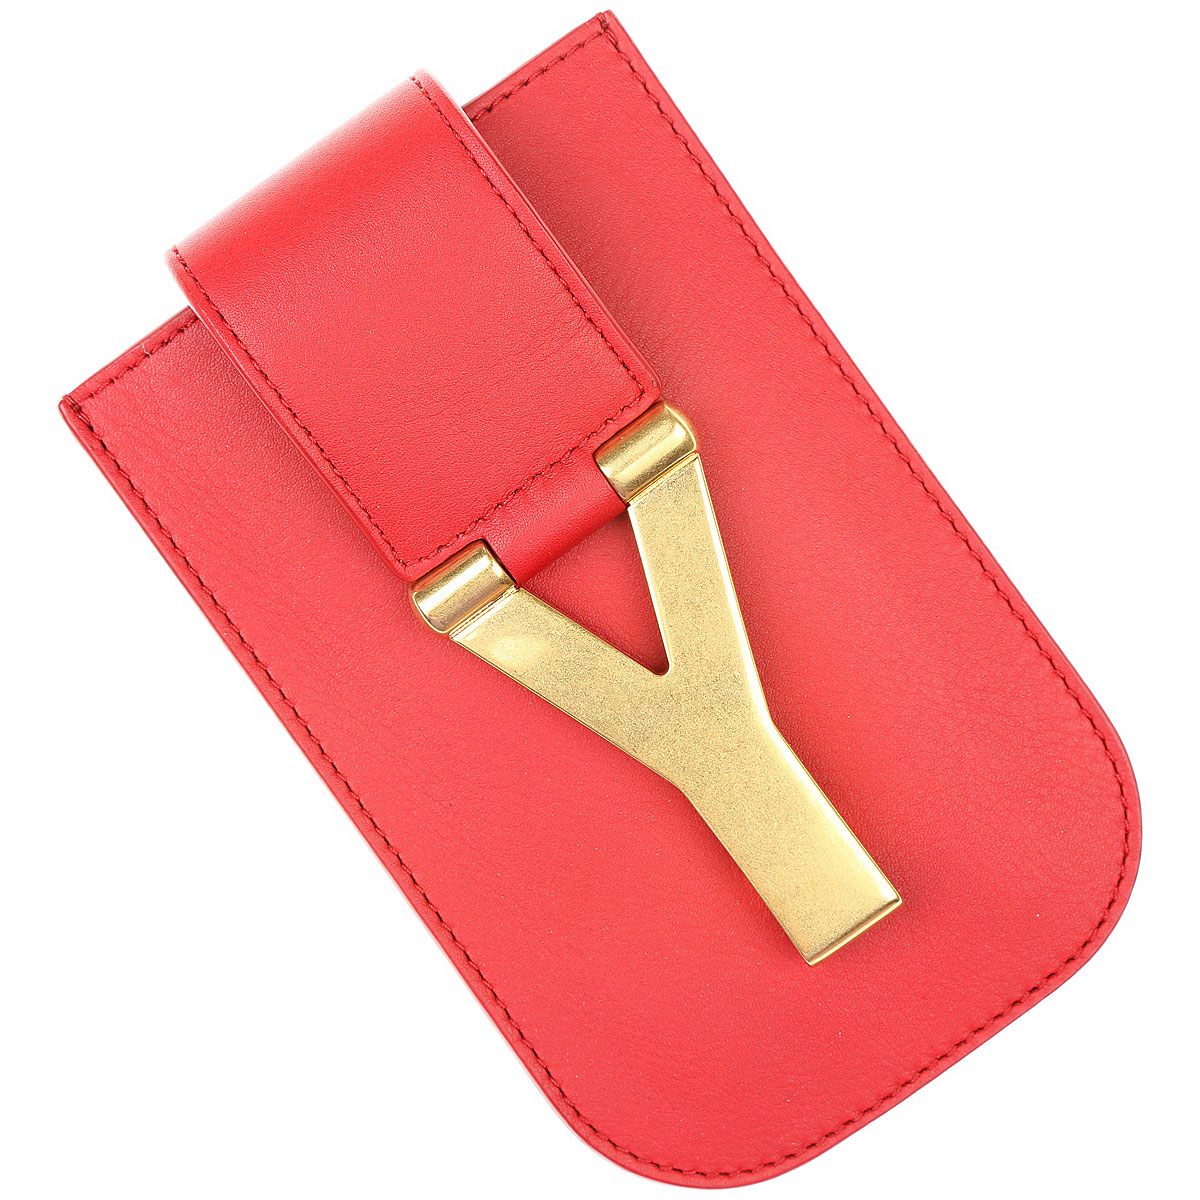 Yves Saint Laurent Womens Wallets in Outlet Flame Red USA - GOOFASH